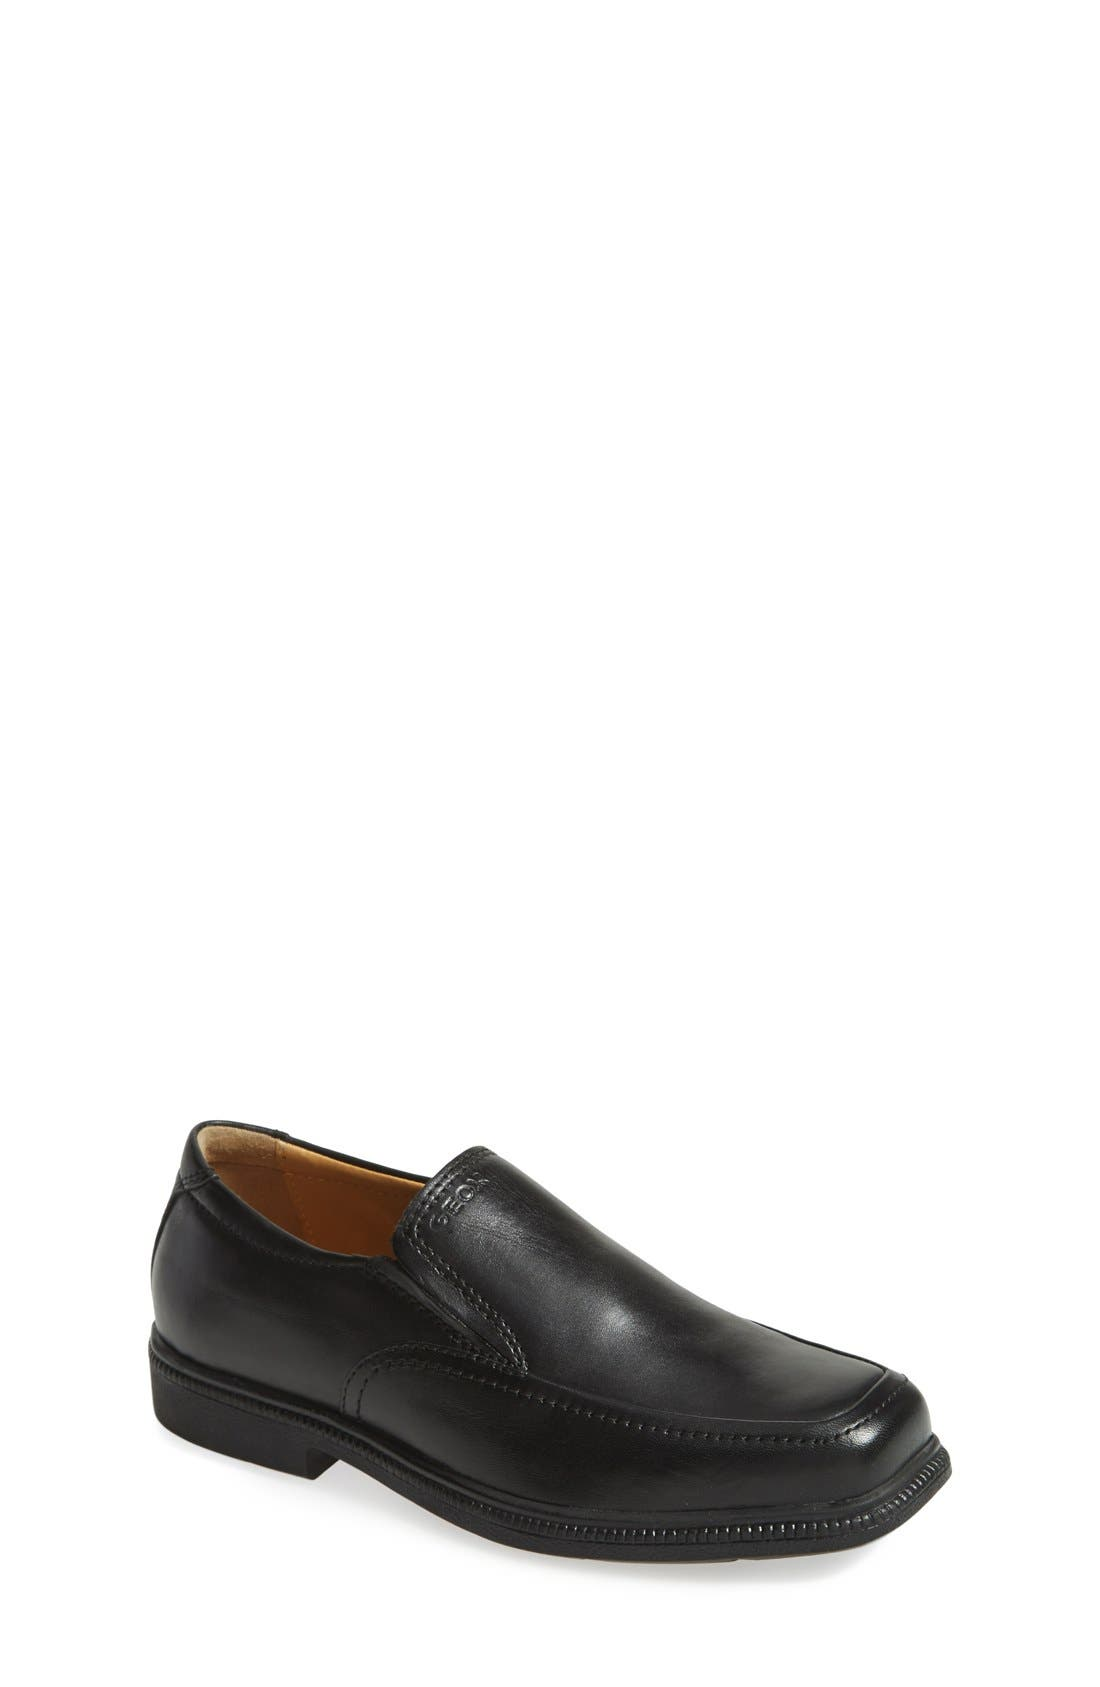 'Federico' Loafer,                             Main thumbnail 1, color,                             Black